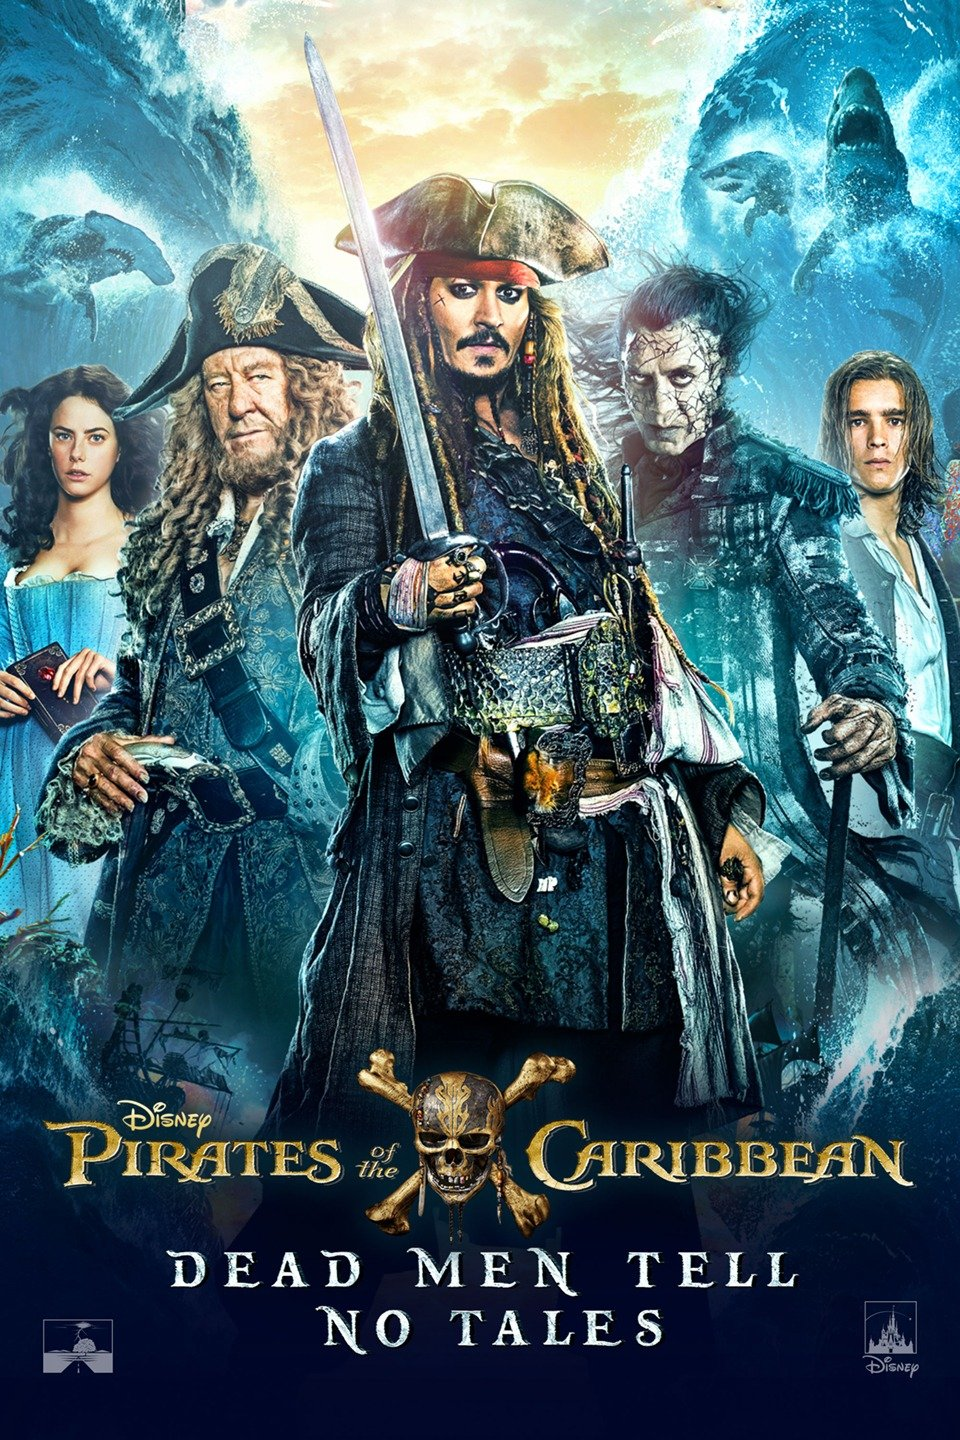 pirates of the caribbean movie merchandise tshirts toys